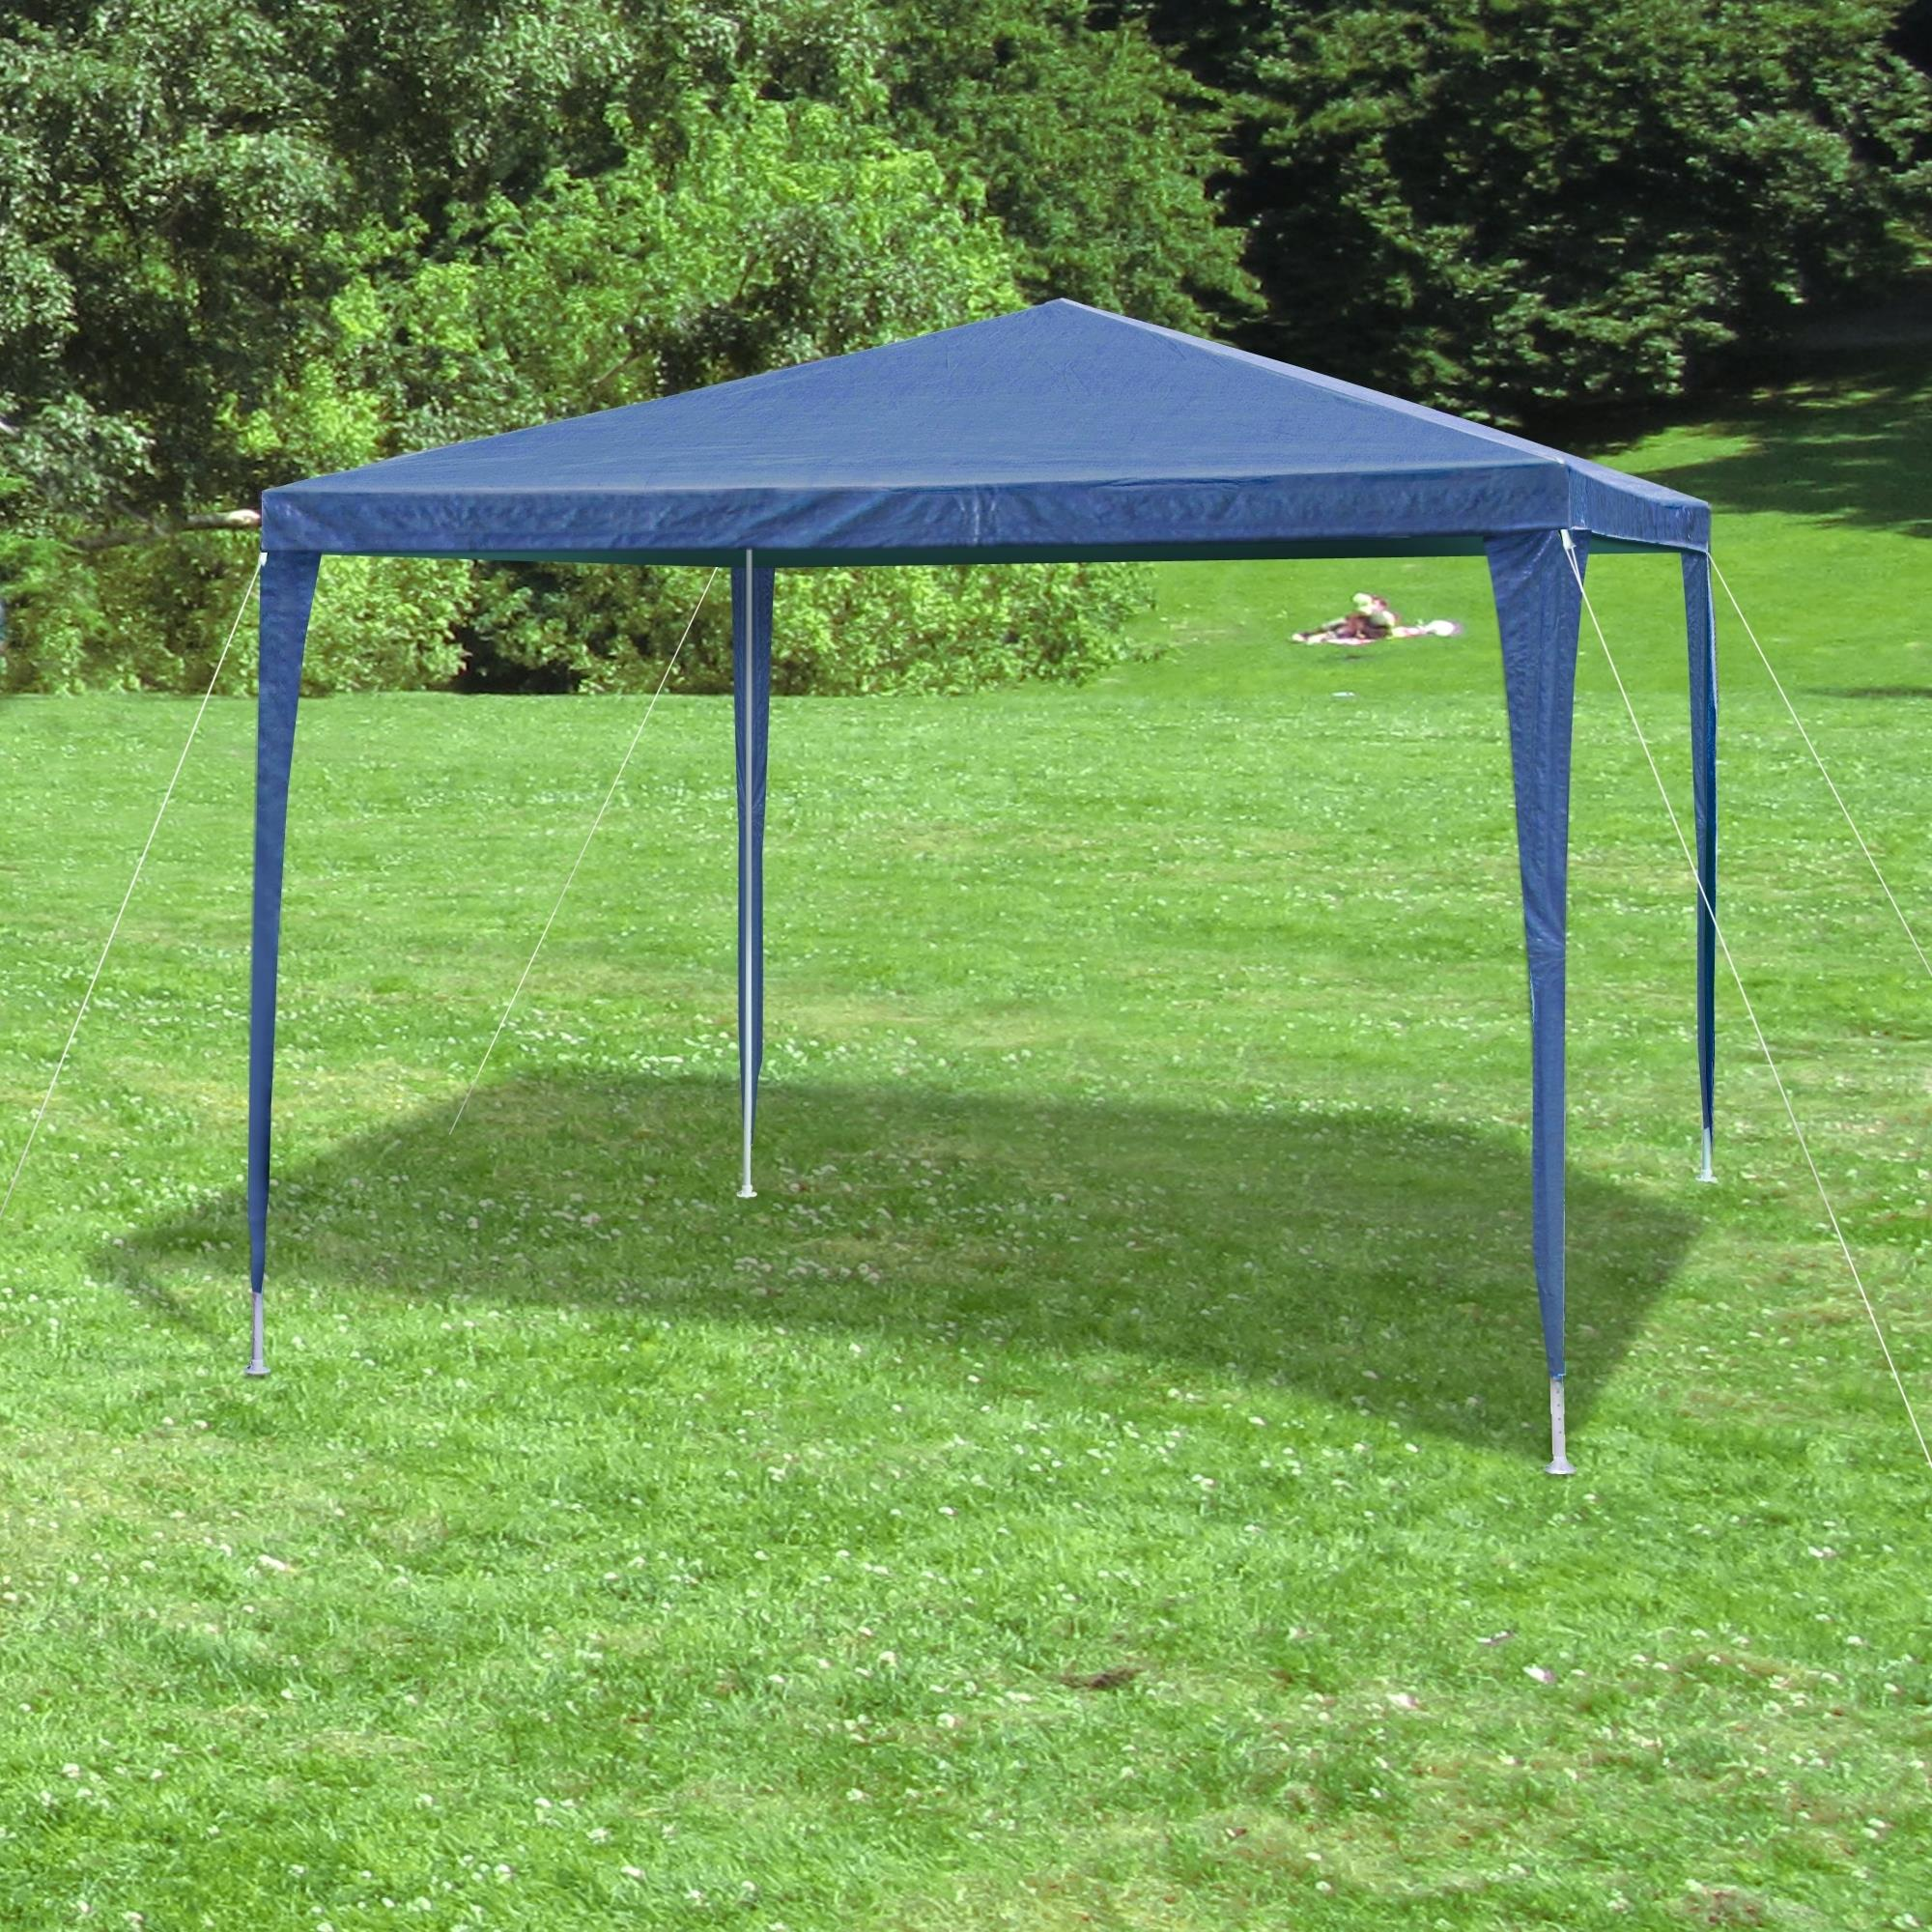 garten pavillon pavillion fest zelt blau 3x3 m 4 seitenteile 110g wasserdicht ebay. Black Bedroom Furniture Sets. Home Design Ideas